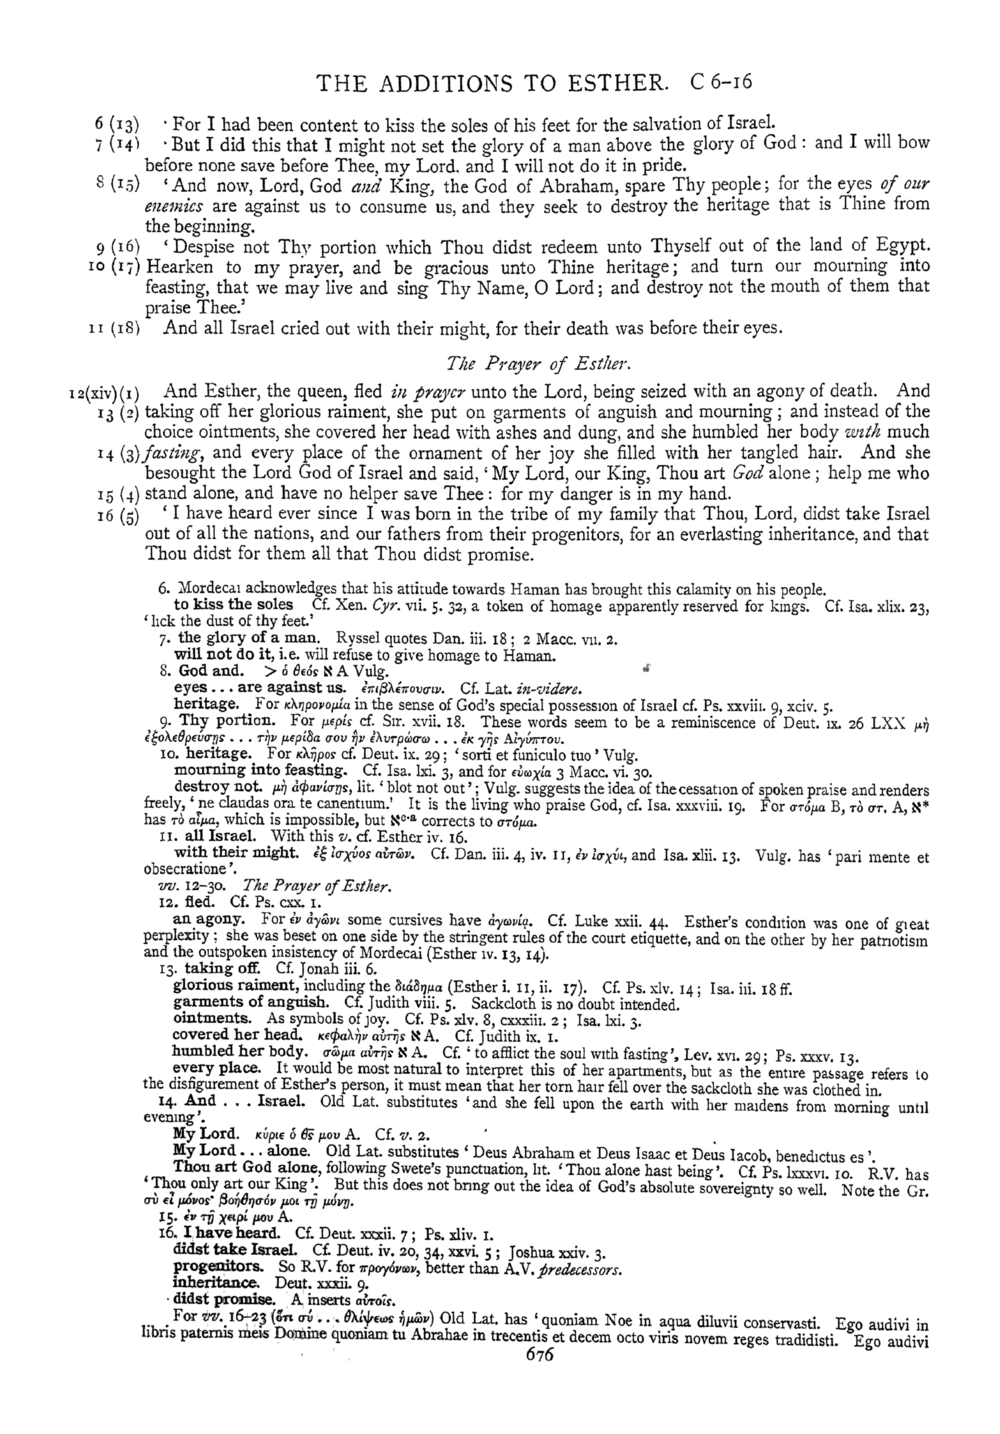 Image of page 676